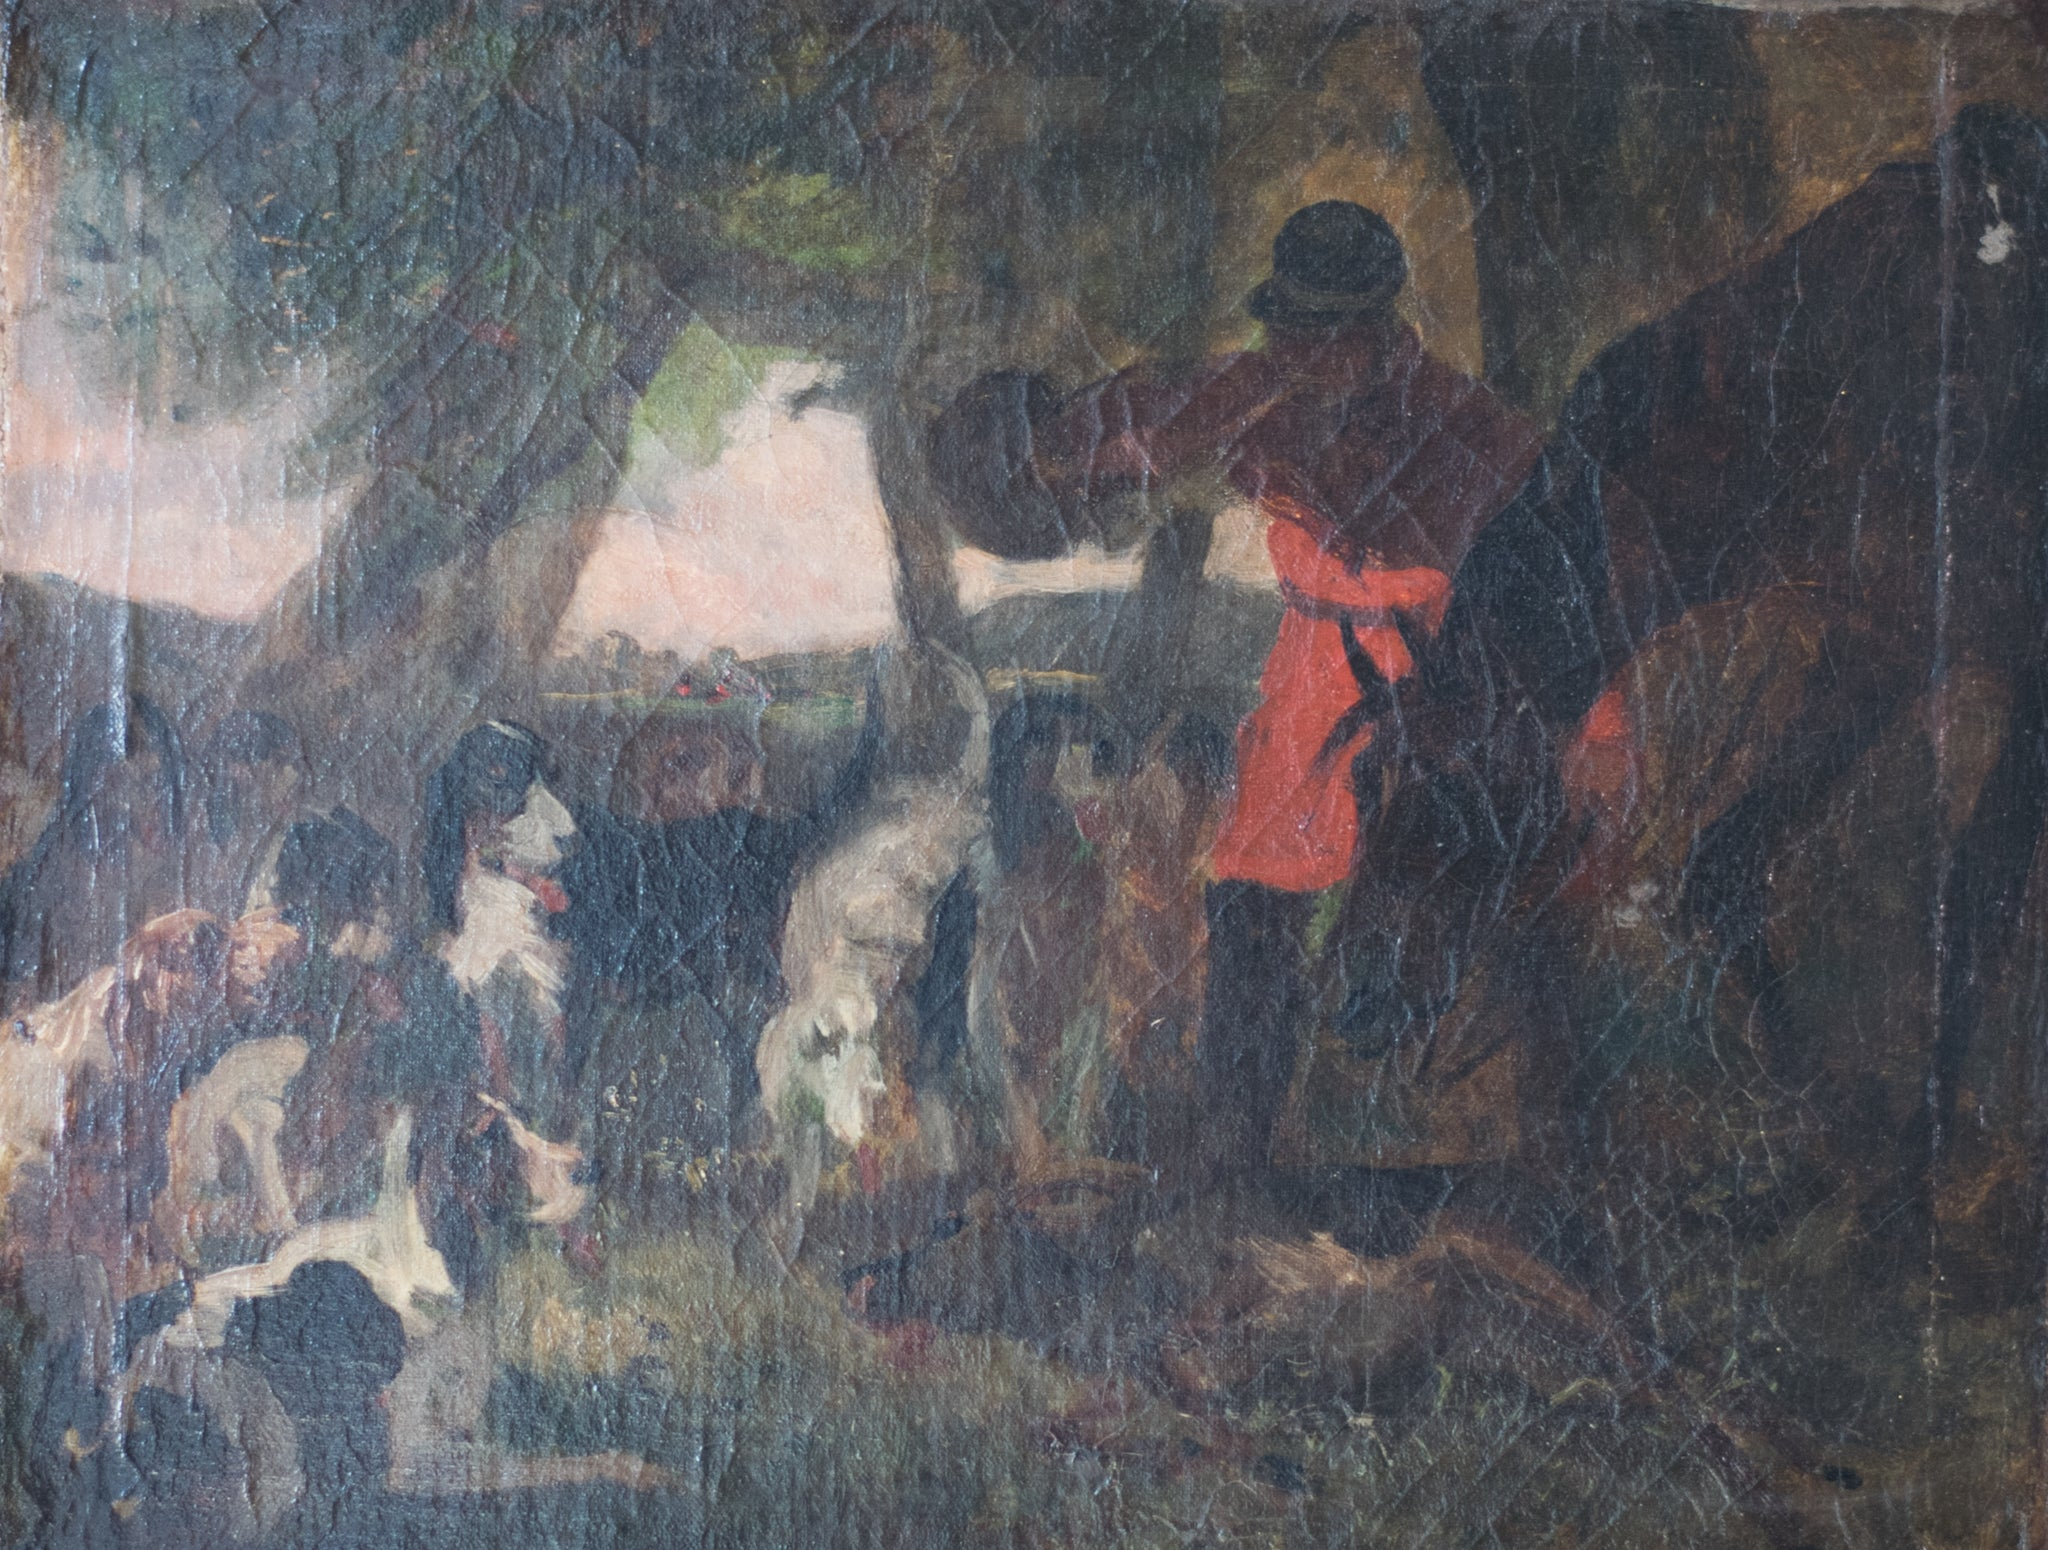 Hunting scene with horse and hounds from the 19th century. Oil on canvas